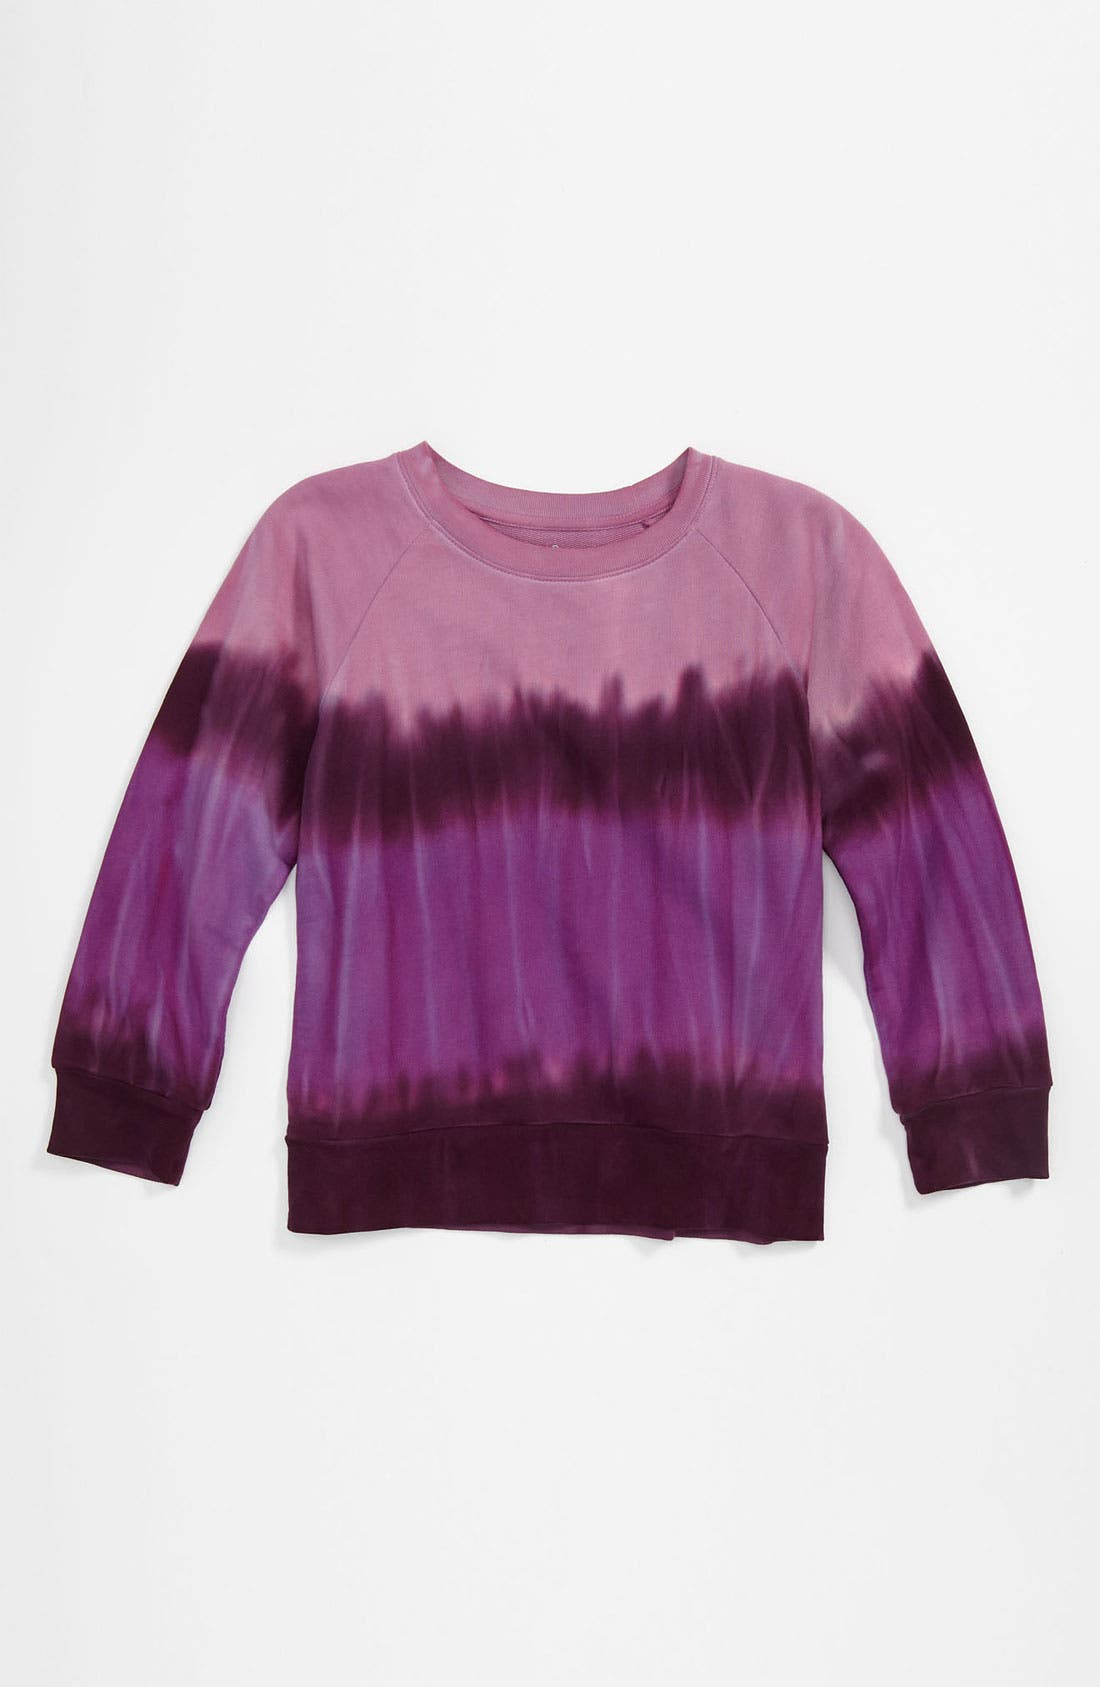 Alternate Image 1 Selected - Peek 'Carnival' Sweater (Toddler, Little Girls & Big Girls)